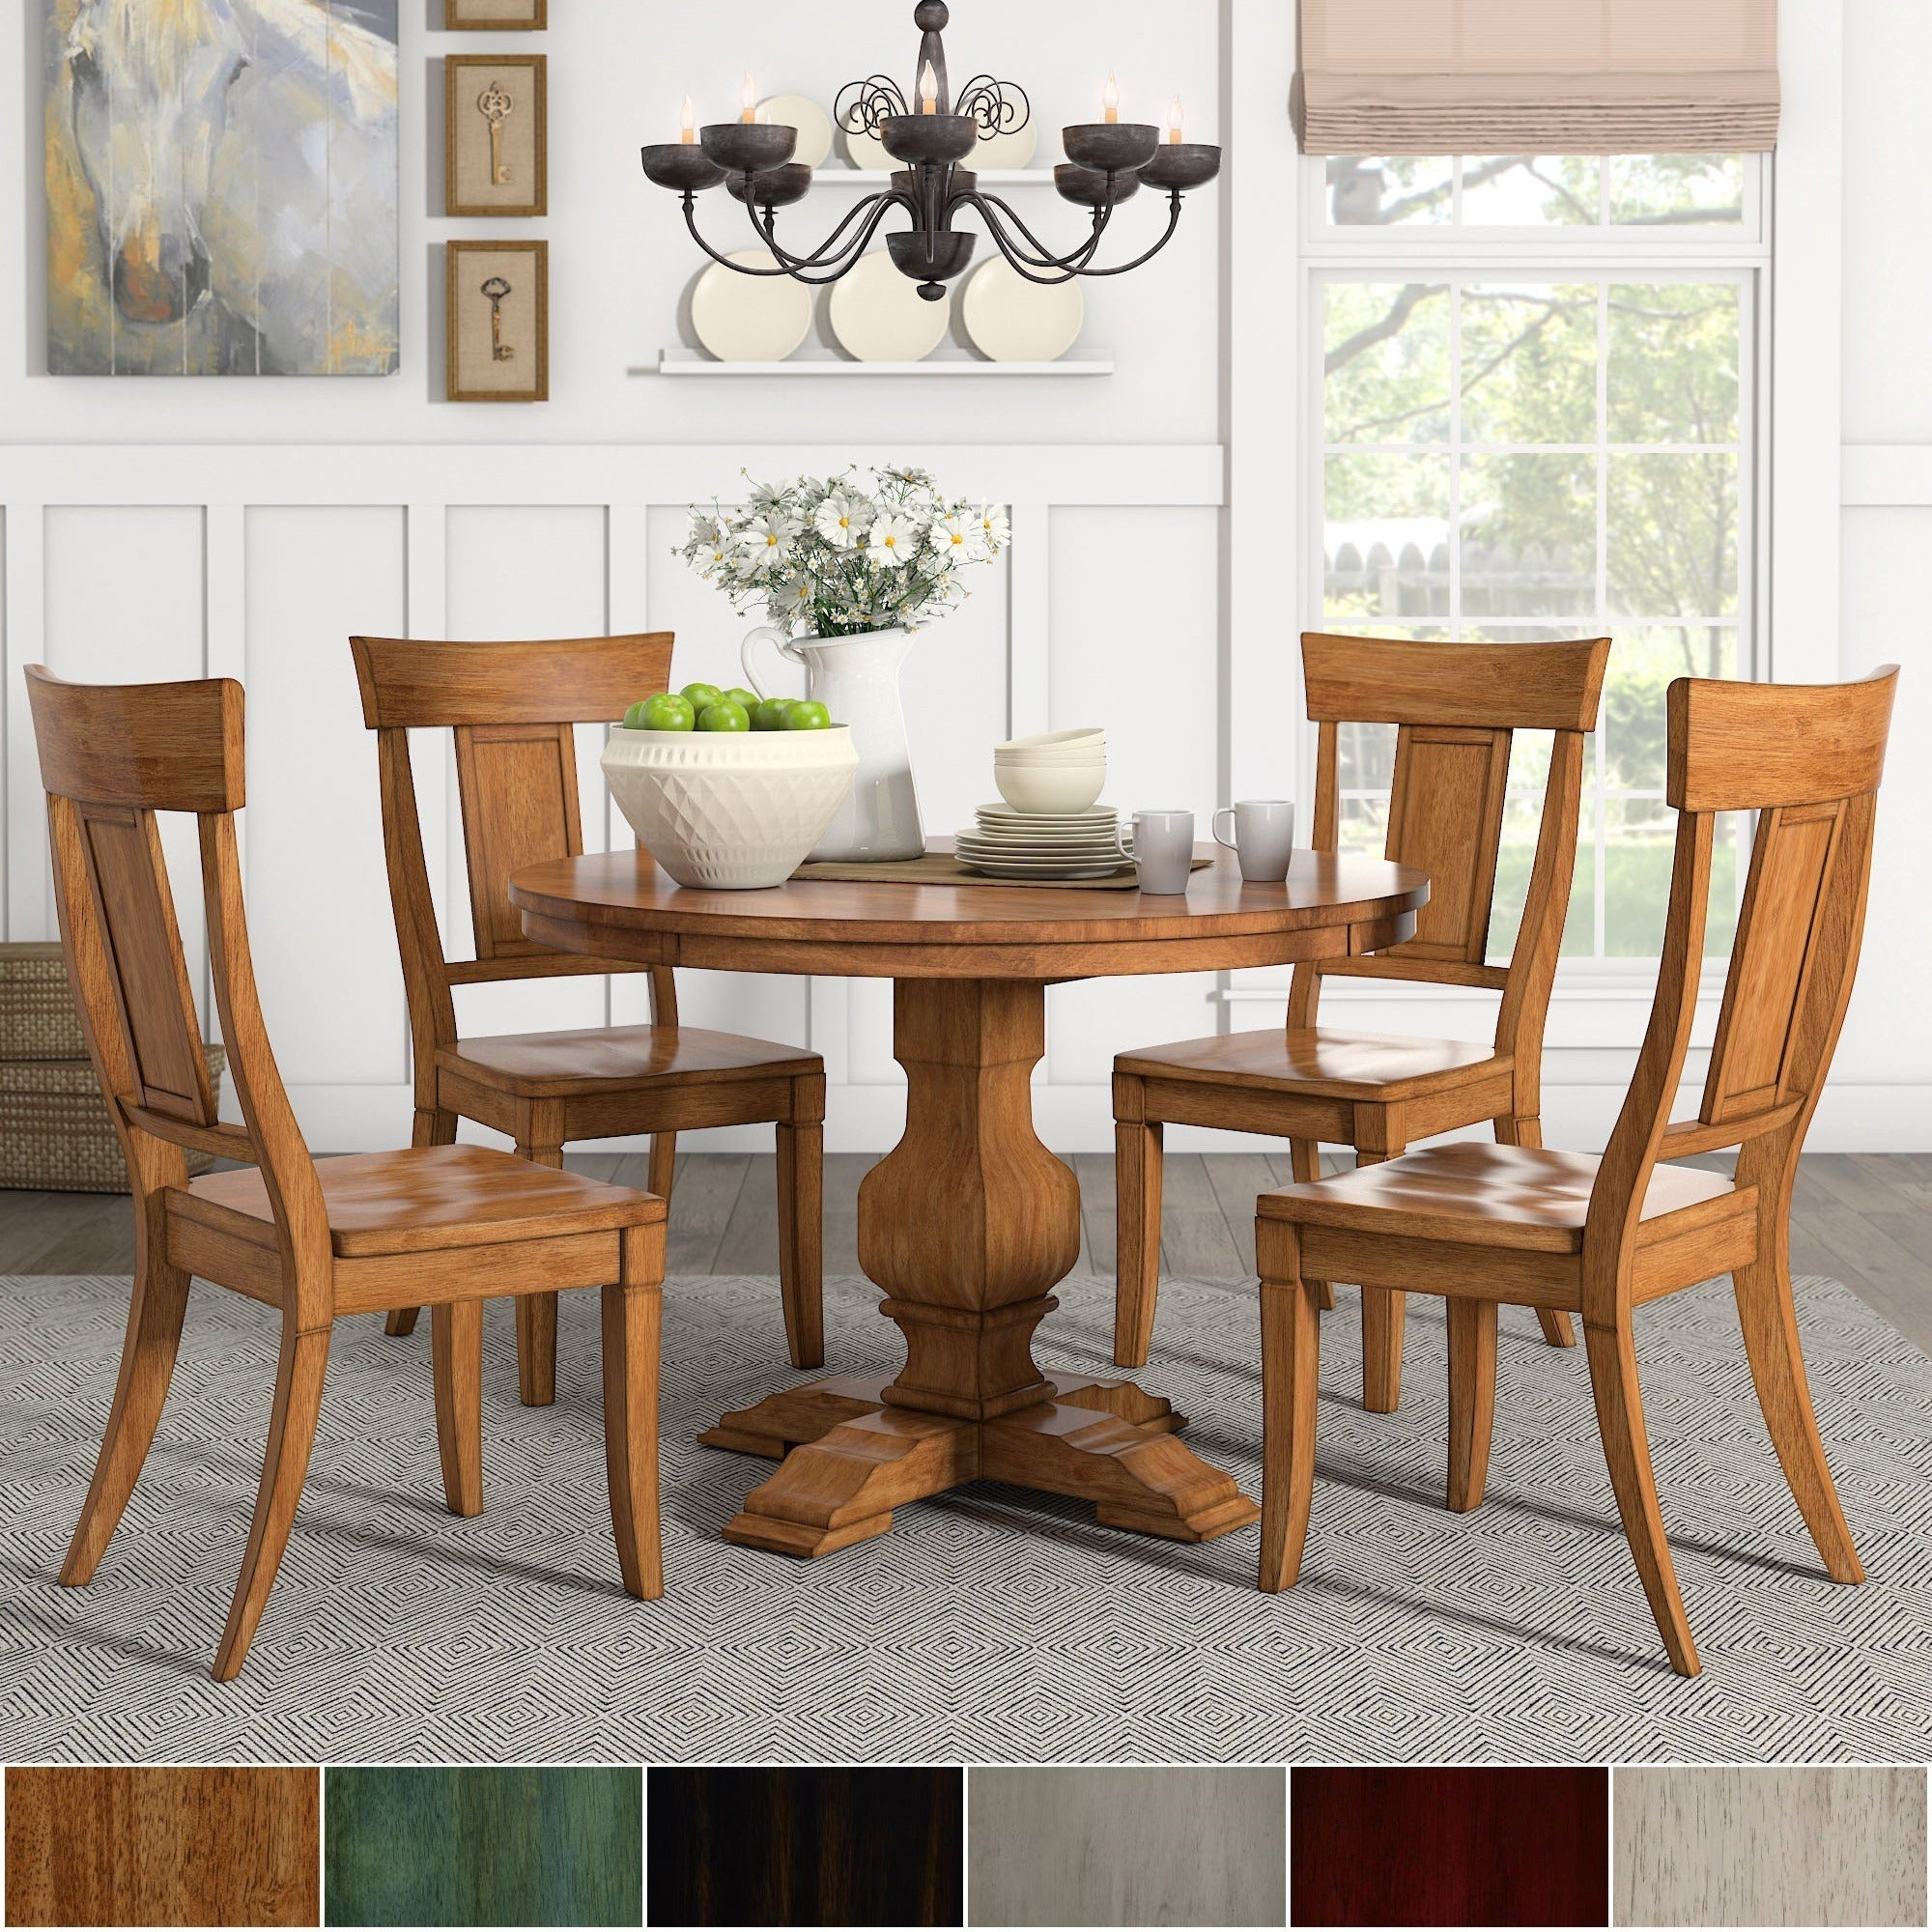 Eleanor Oak Round Soild Wood Table and Panel Back Chairs 5-piece Dining Set  by iNSPIRE Q Classic - Free Shipping Today - Overstock.com - 21094436